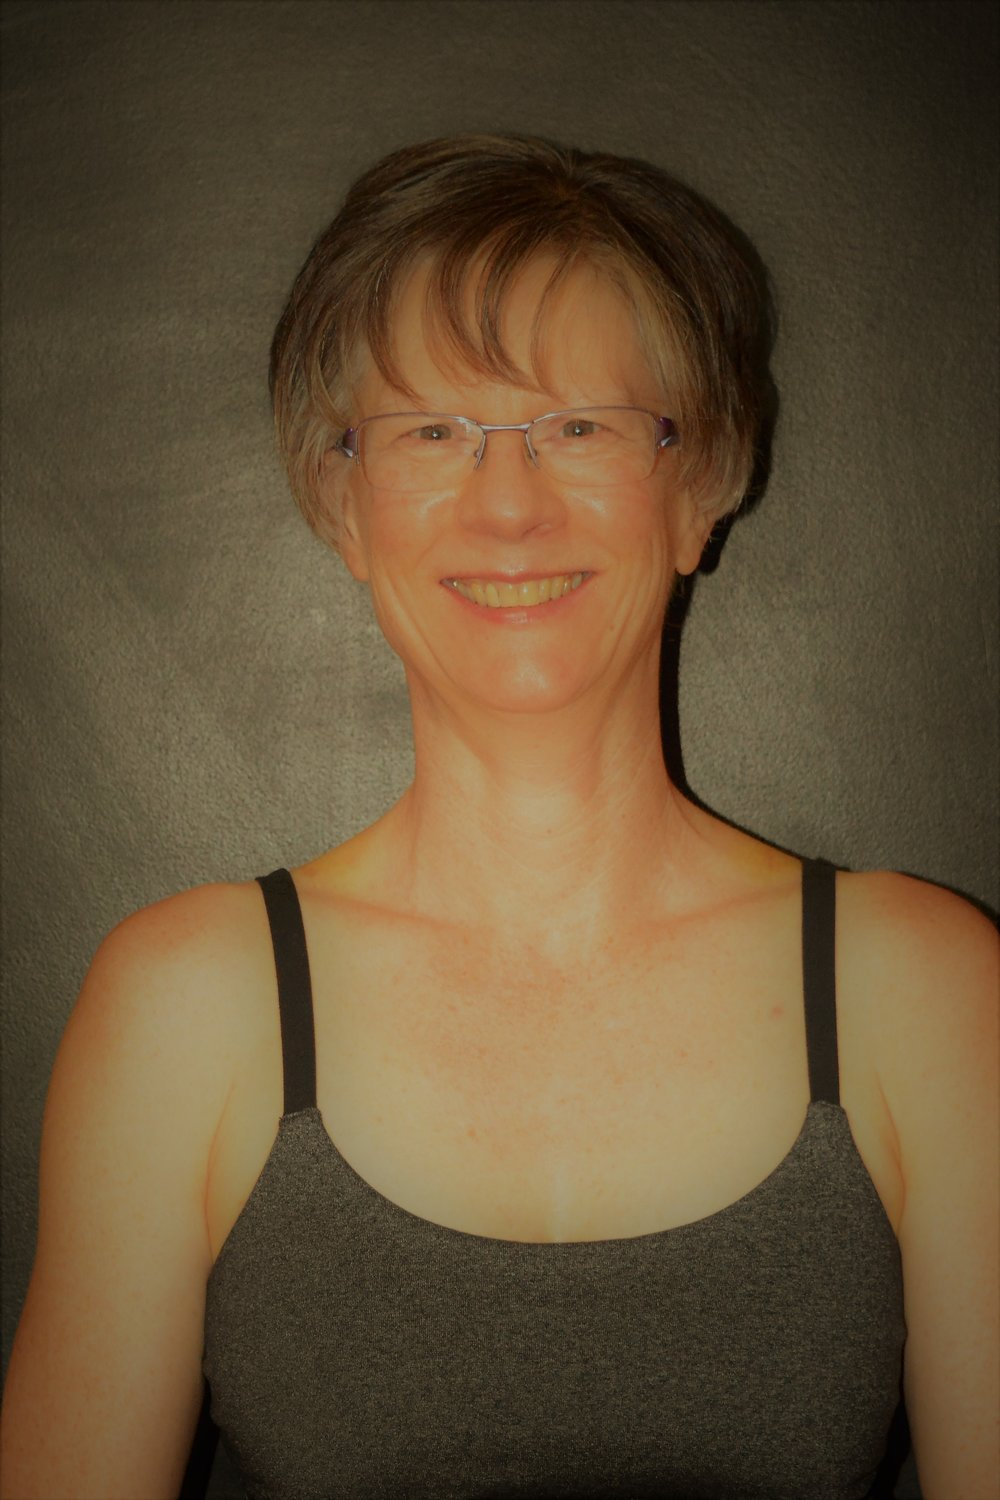 JOIN ALICIA - TUESDAY NIGHTS - 5:50 - 6:30